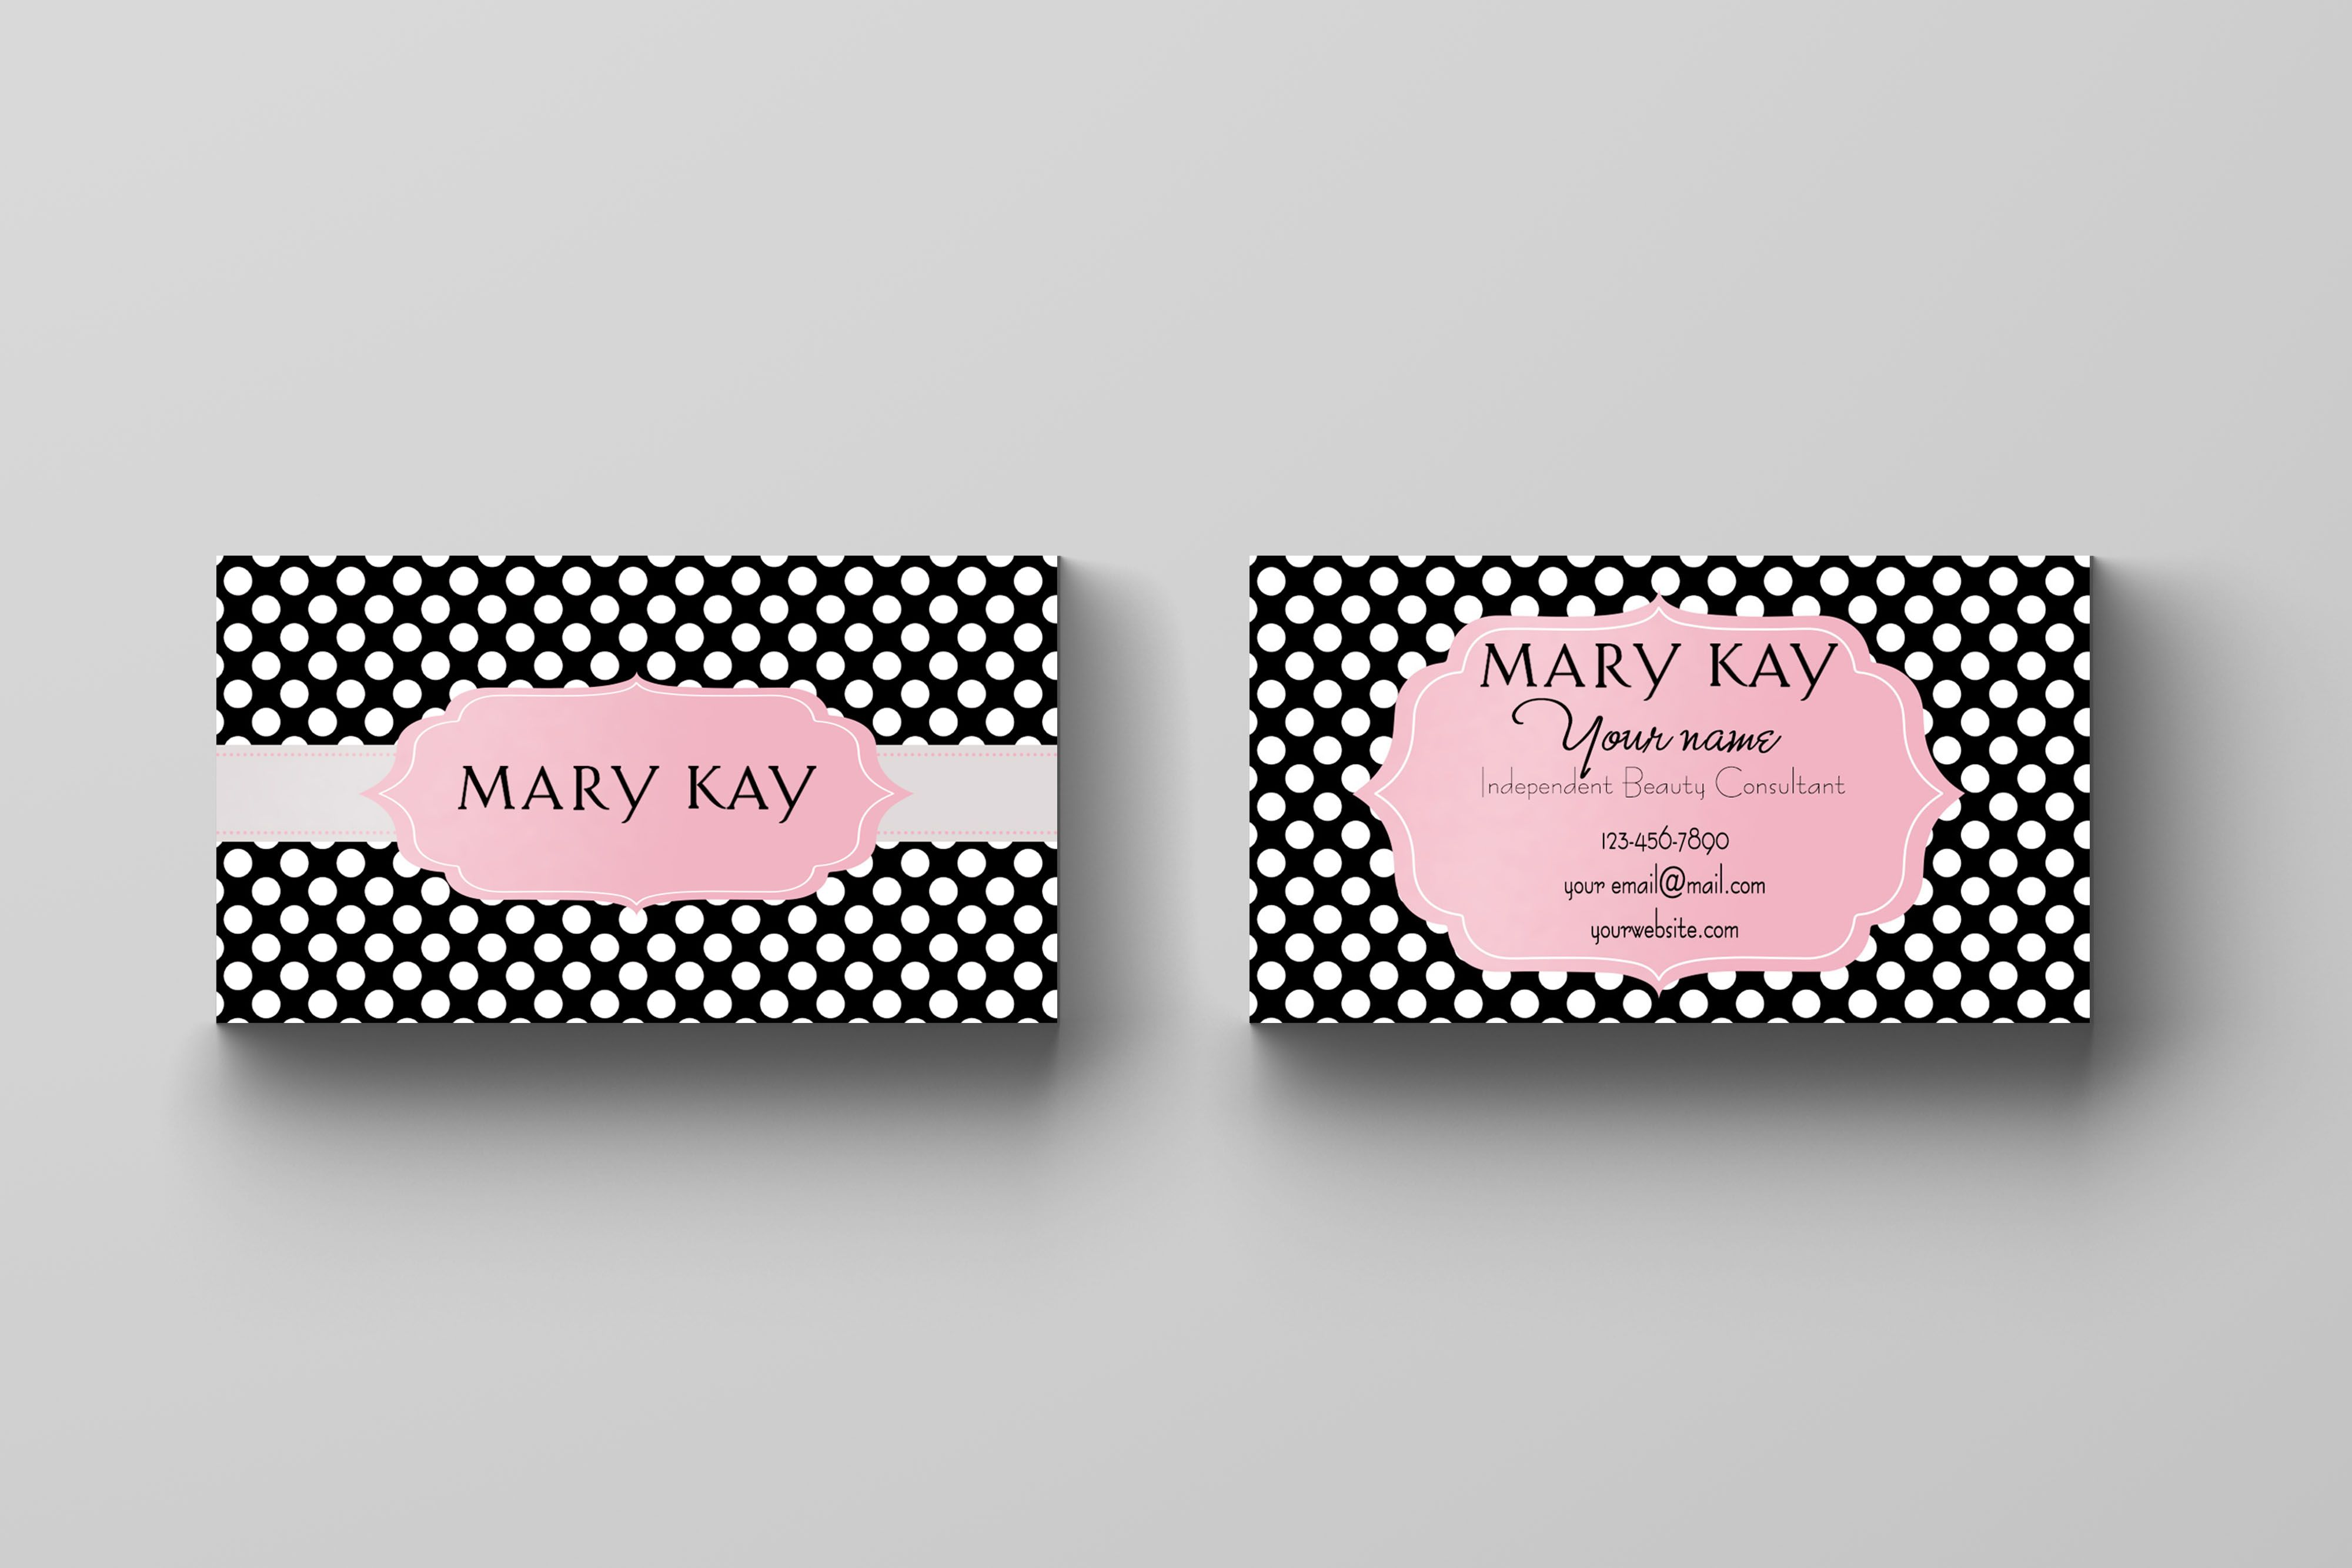 Mary Kay Business Card Black Polka Dots Kakaodesigns Mary Kay Business Cards Mary Kay Business Business Card Black